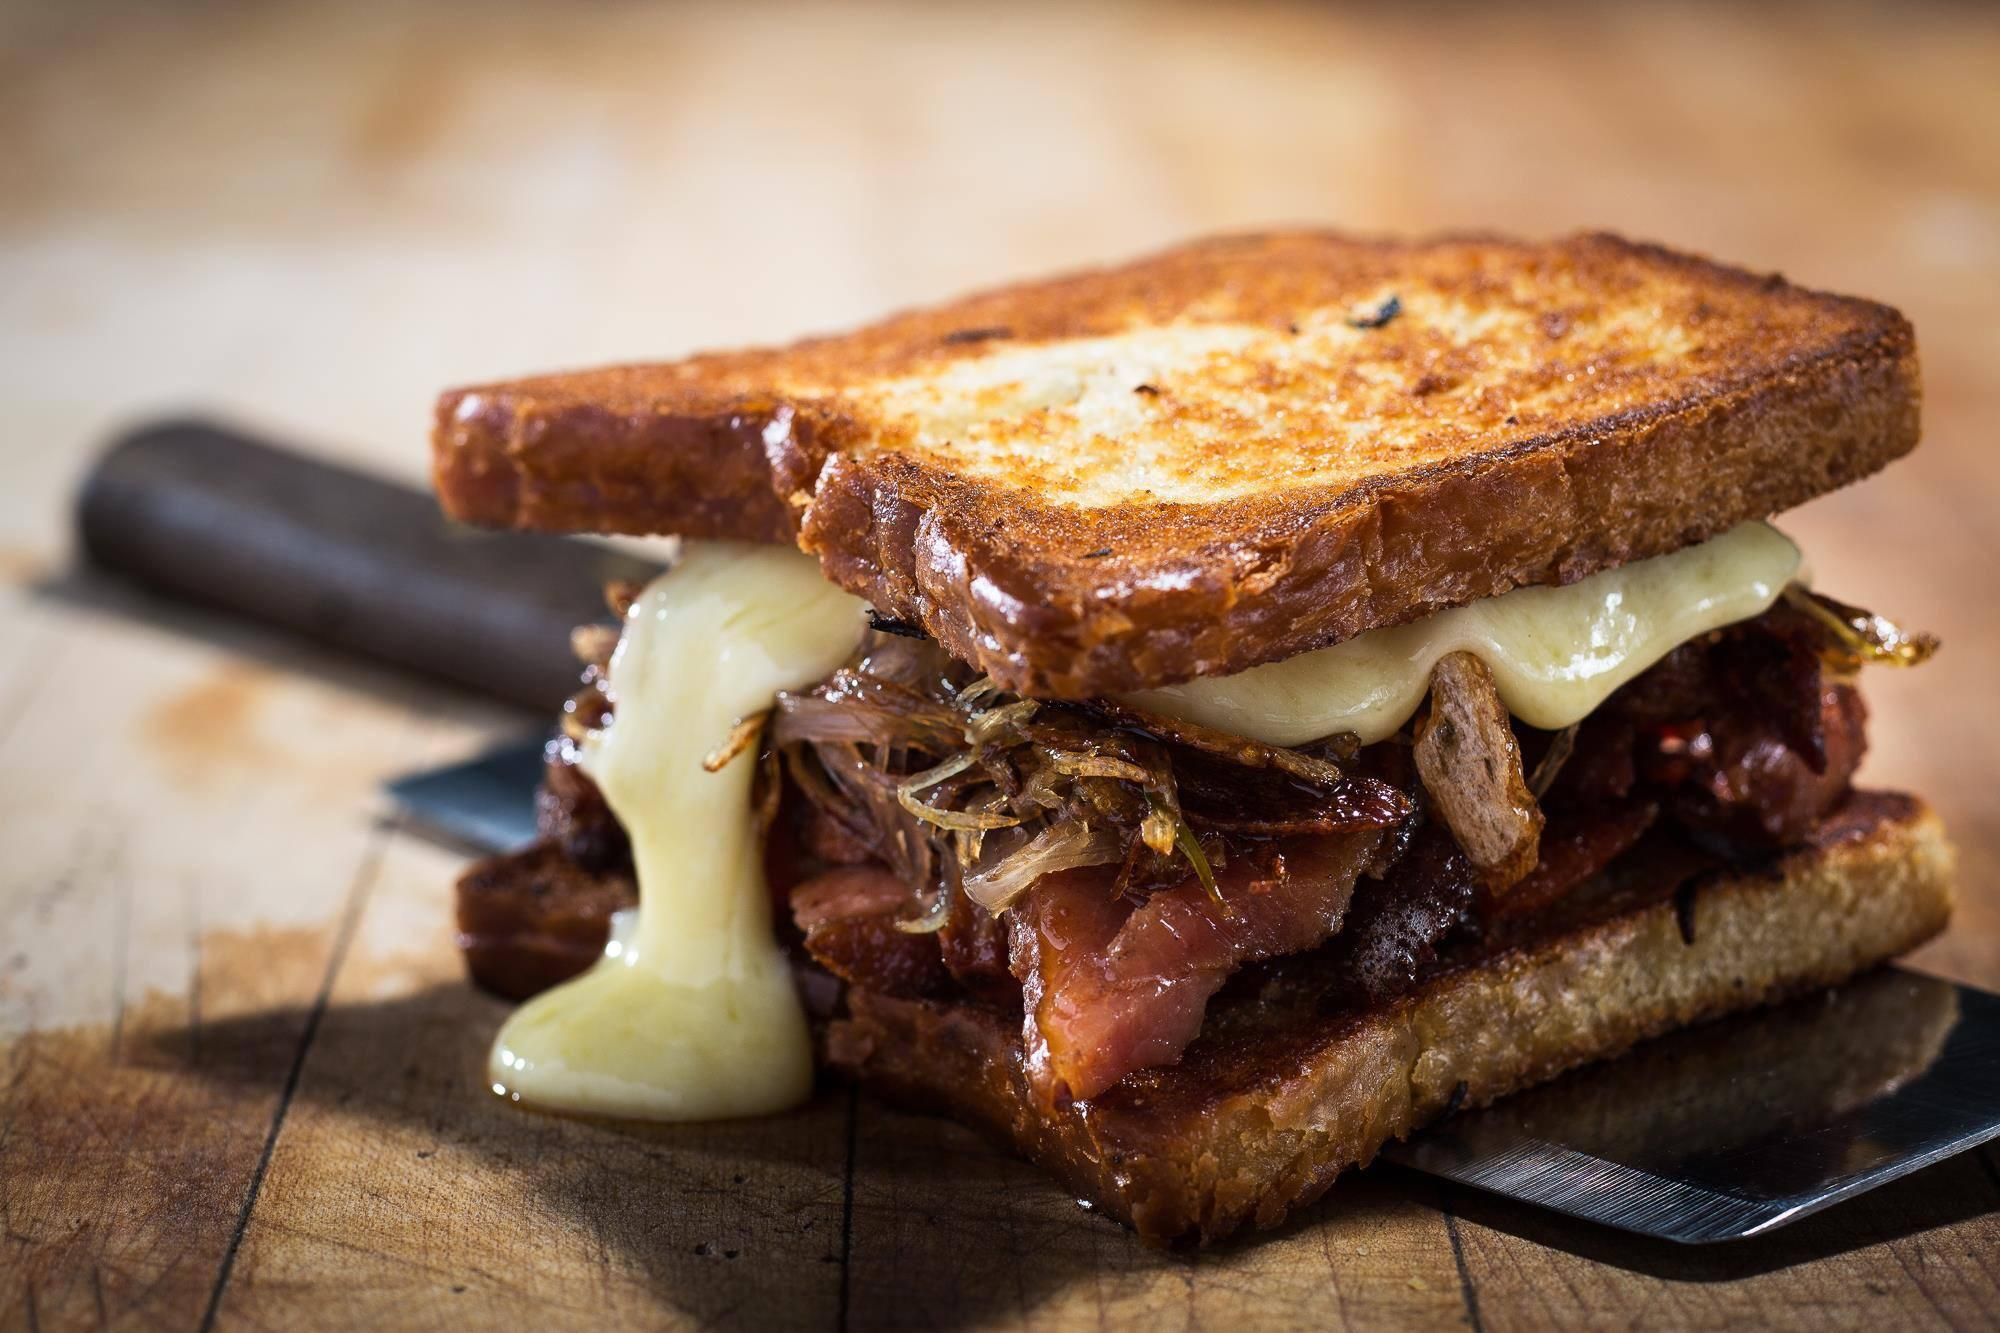 Montreal's Mouthwatering Grilled Cheeses Now Available Till 3am At A Popular Bar On St-Denis